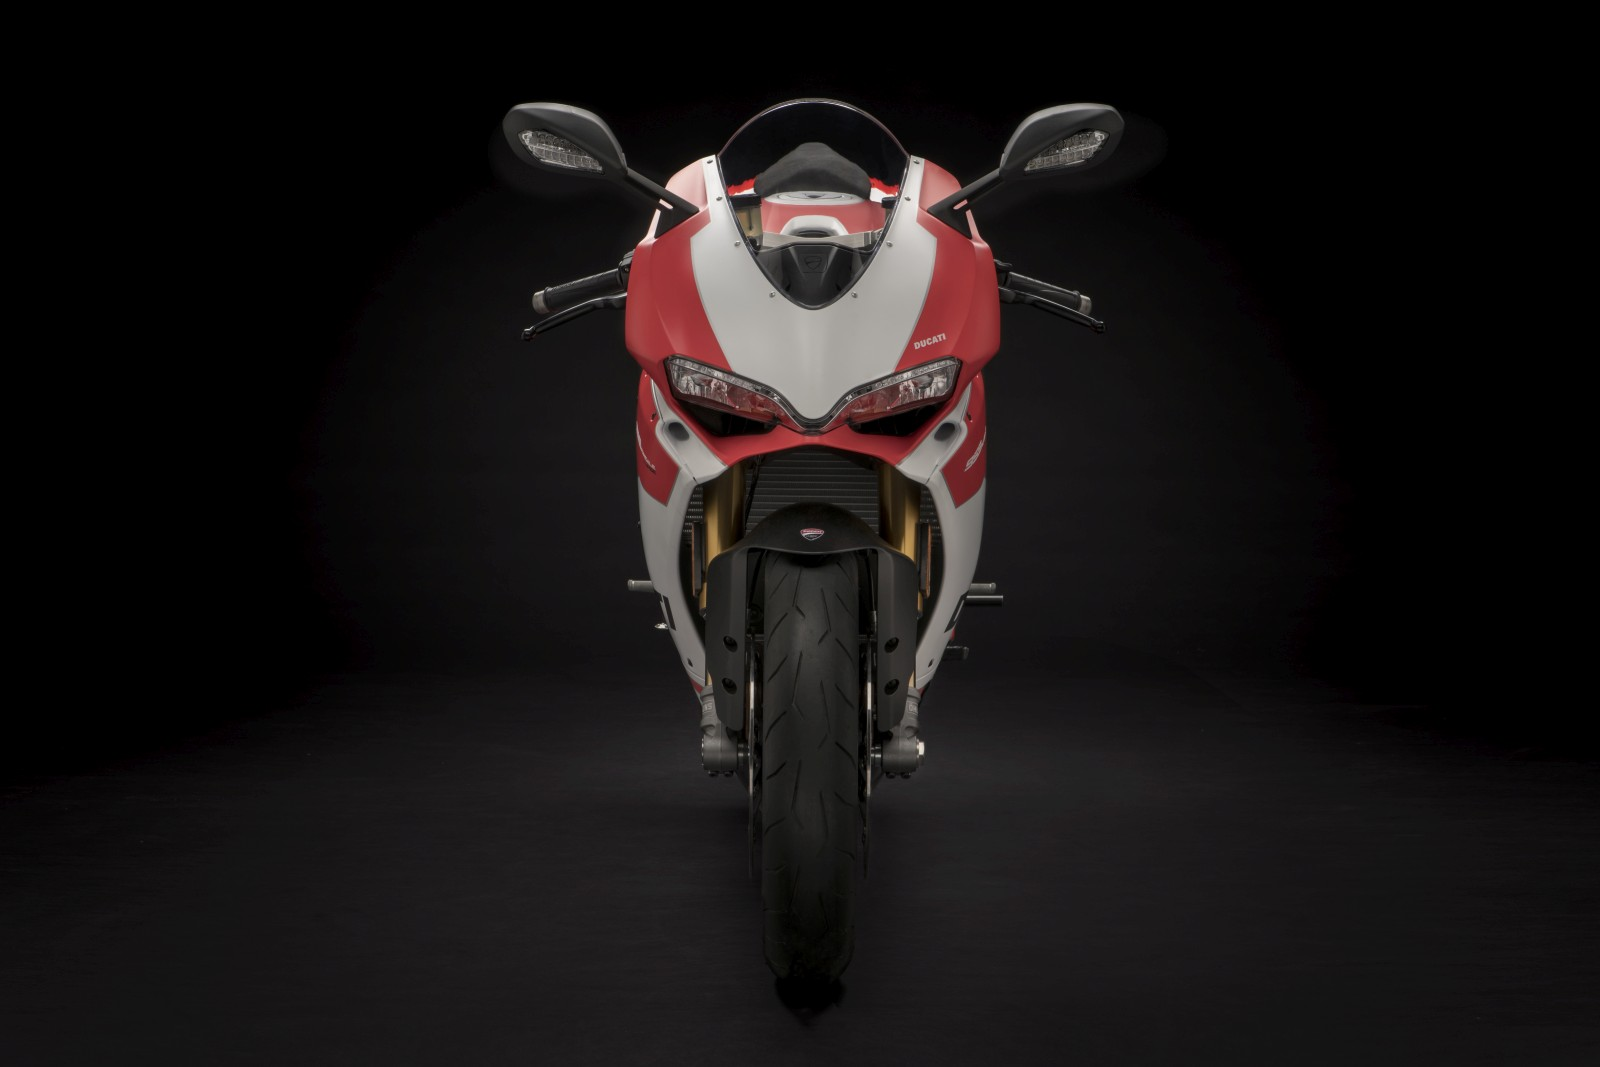 New 2018 Ducati Panigale 959 Corse Features Tech Specs And Image